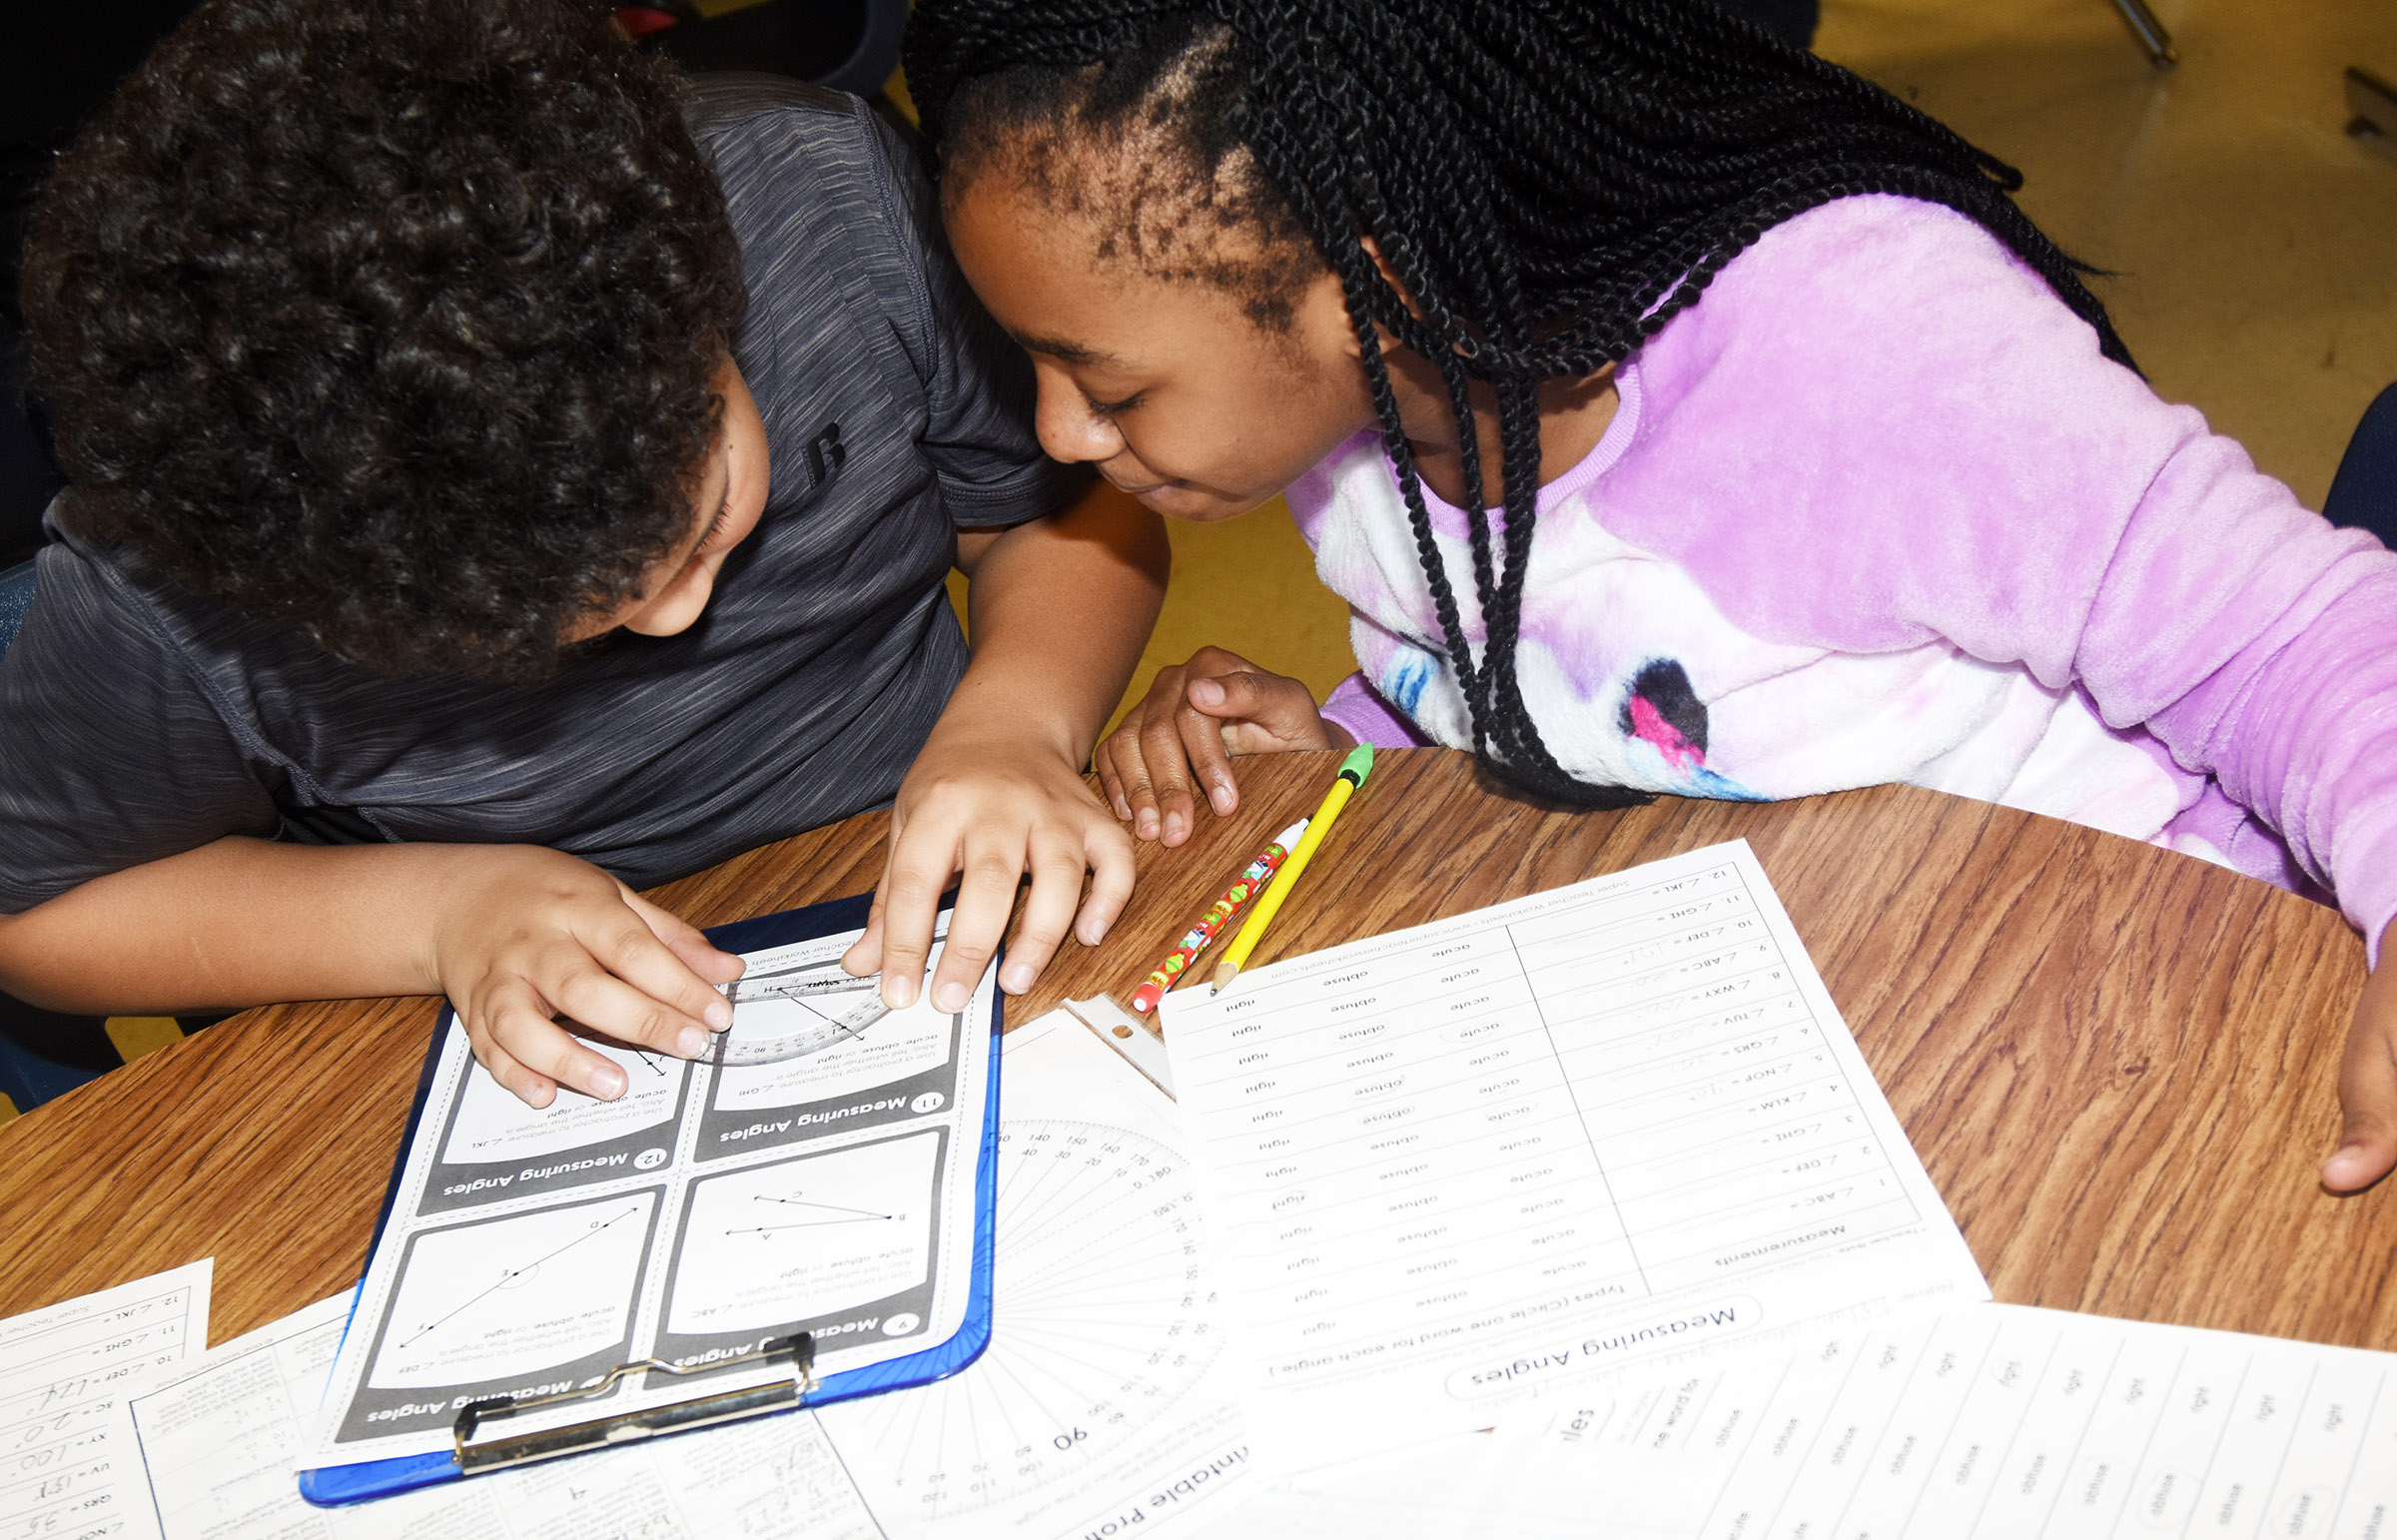 CES fourth-graders Zarek Stone, at left, and Tiffani Gaddie work together to measure an angle.